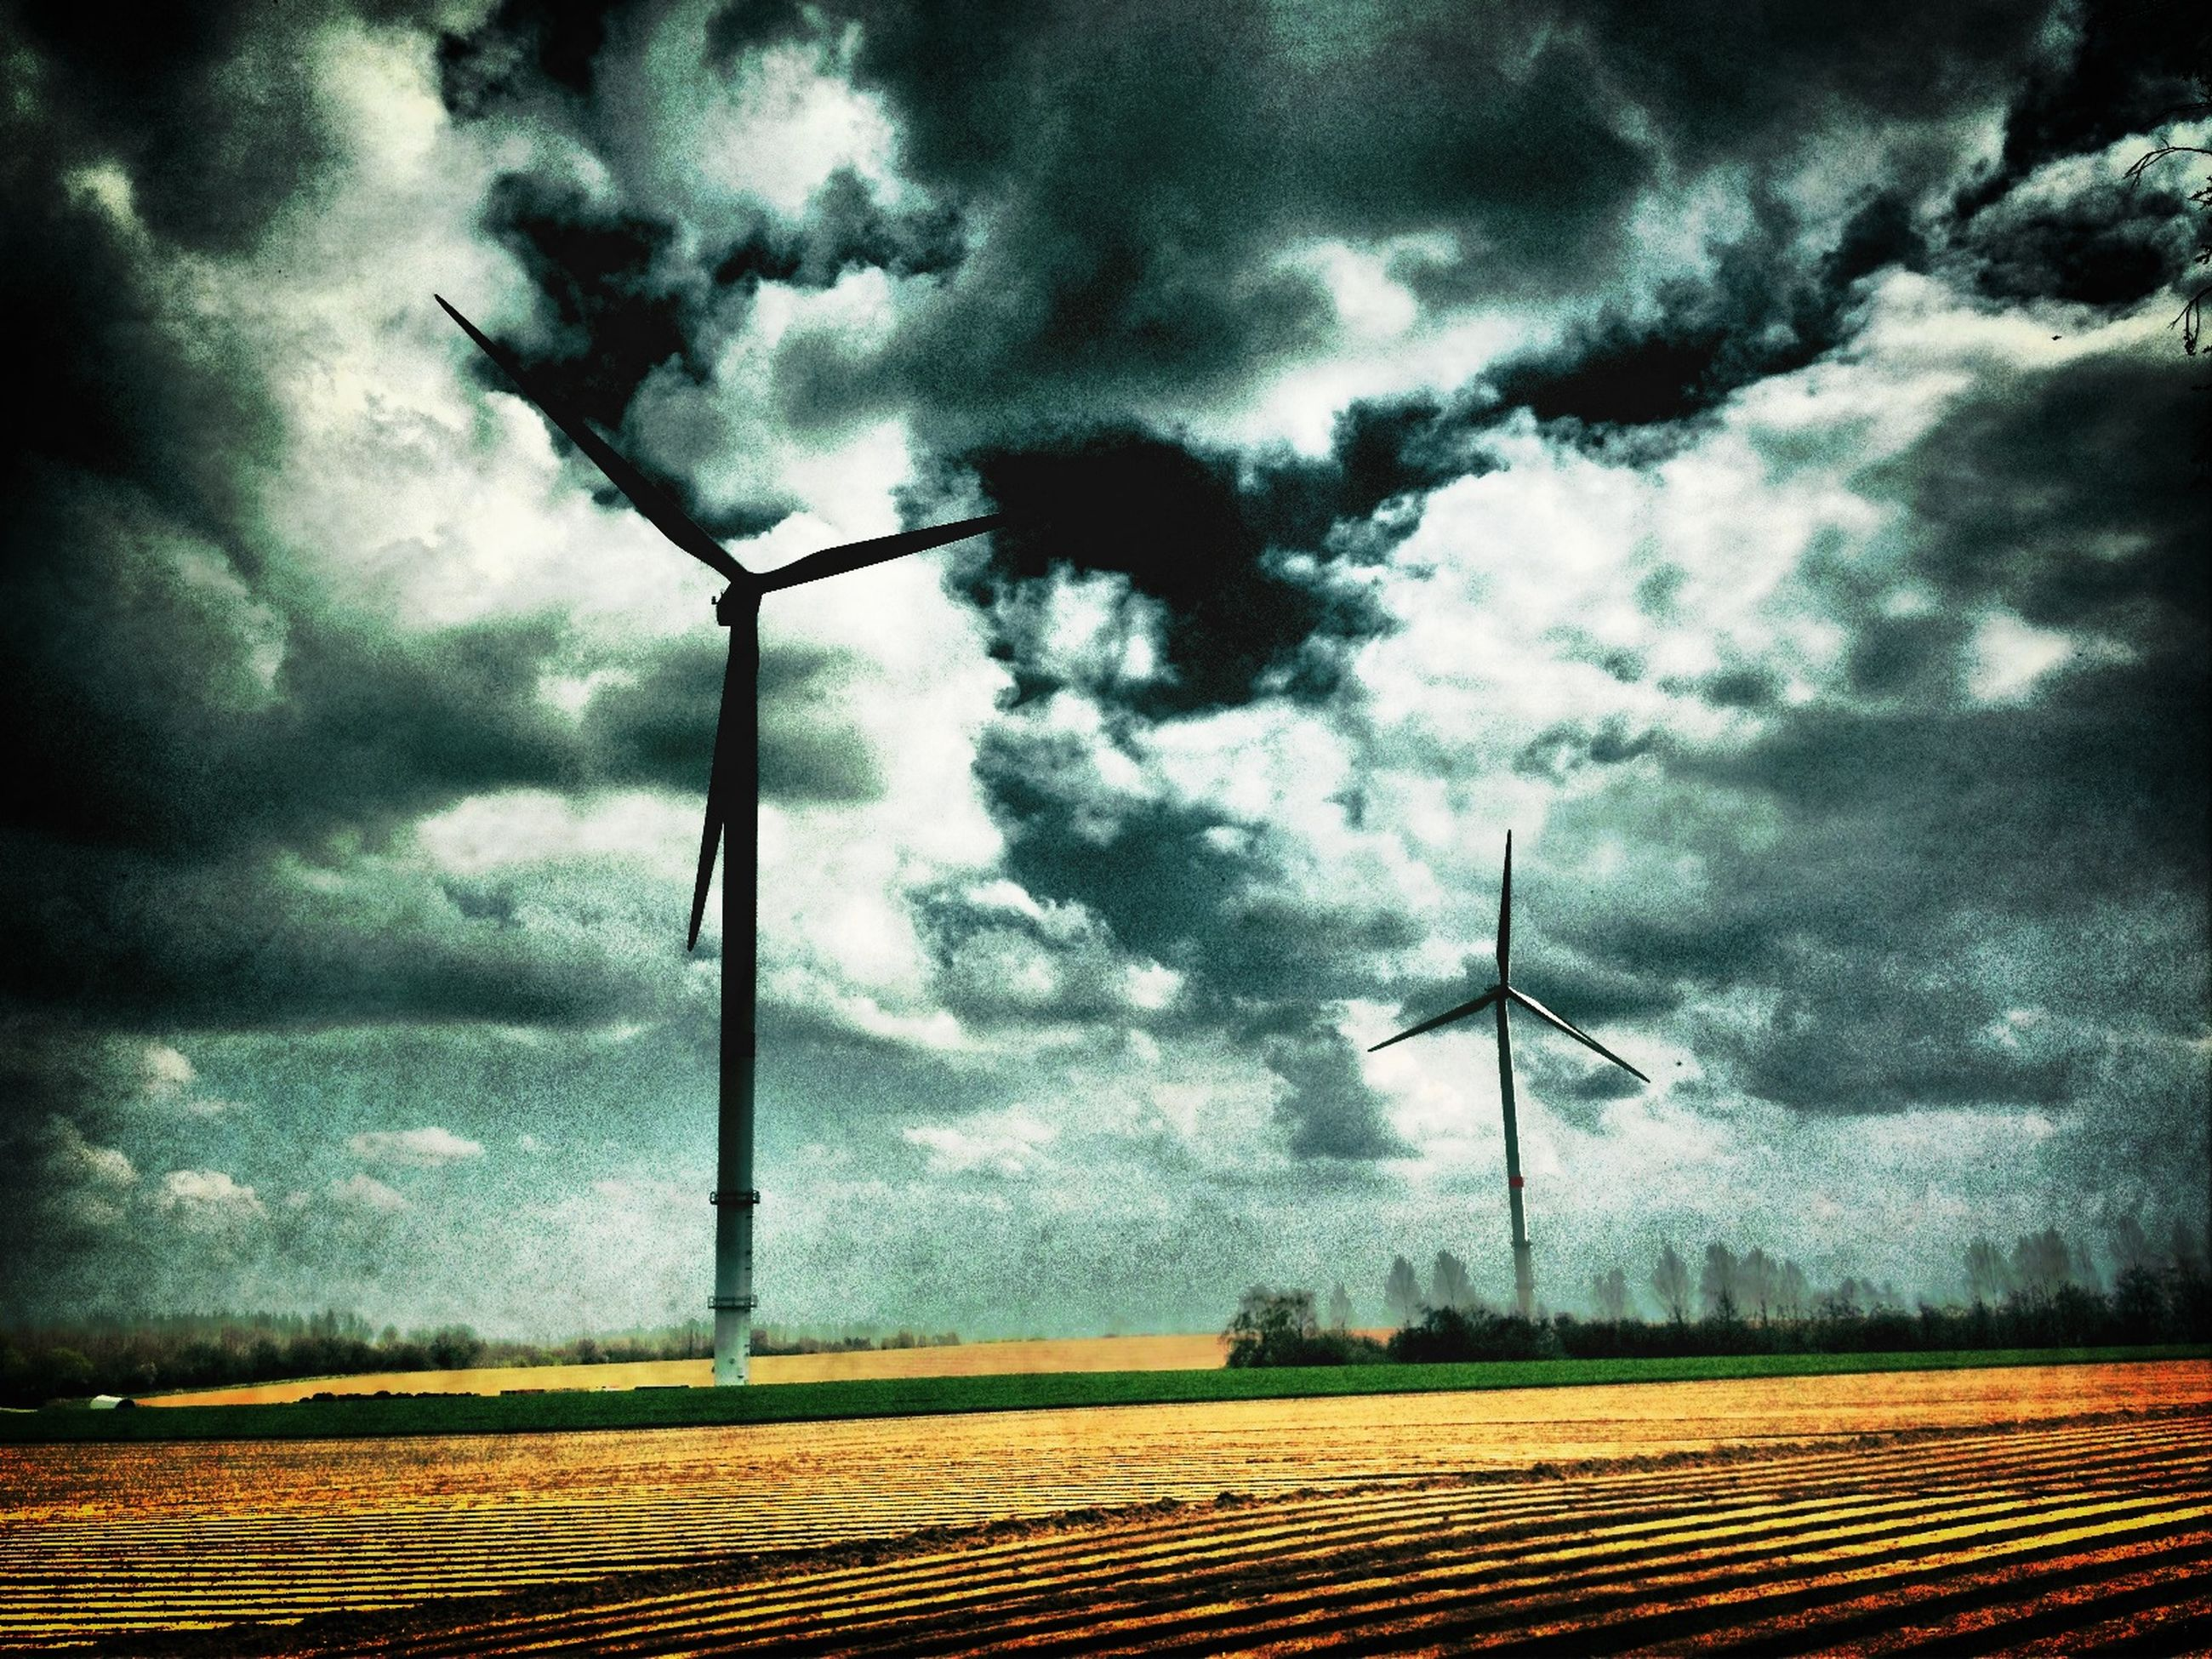 sky, cloud - sky, cloudy, field, landscape, weather, tranquility, overcast, rural scene, wind power, tranquil scene, alternative energy, wind turbine, scenics, fuel and power generation, environmental conservation, windmill, nature, cloud, dramatic sky